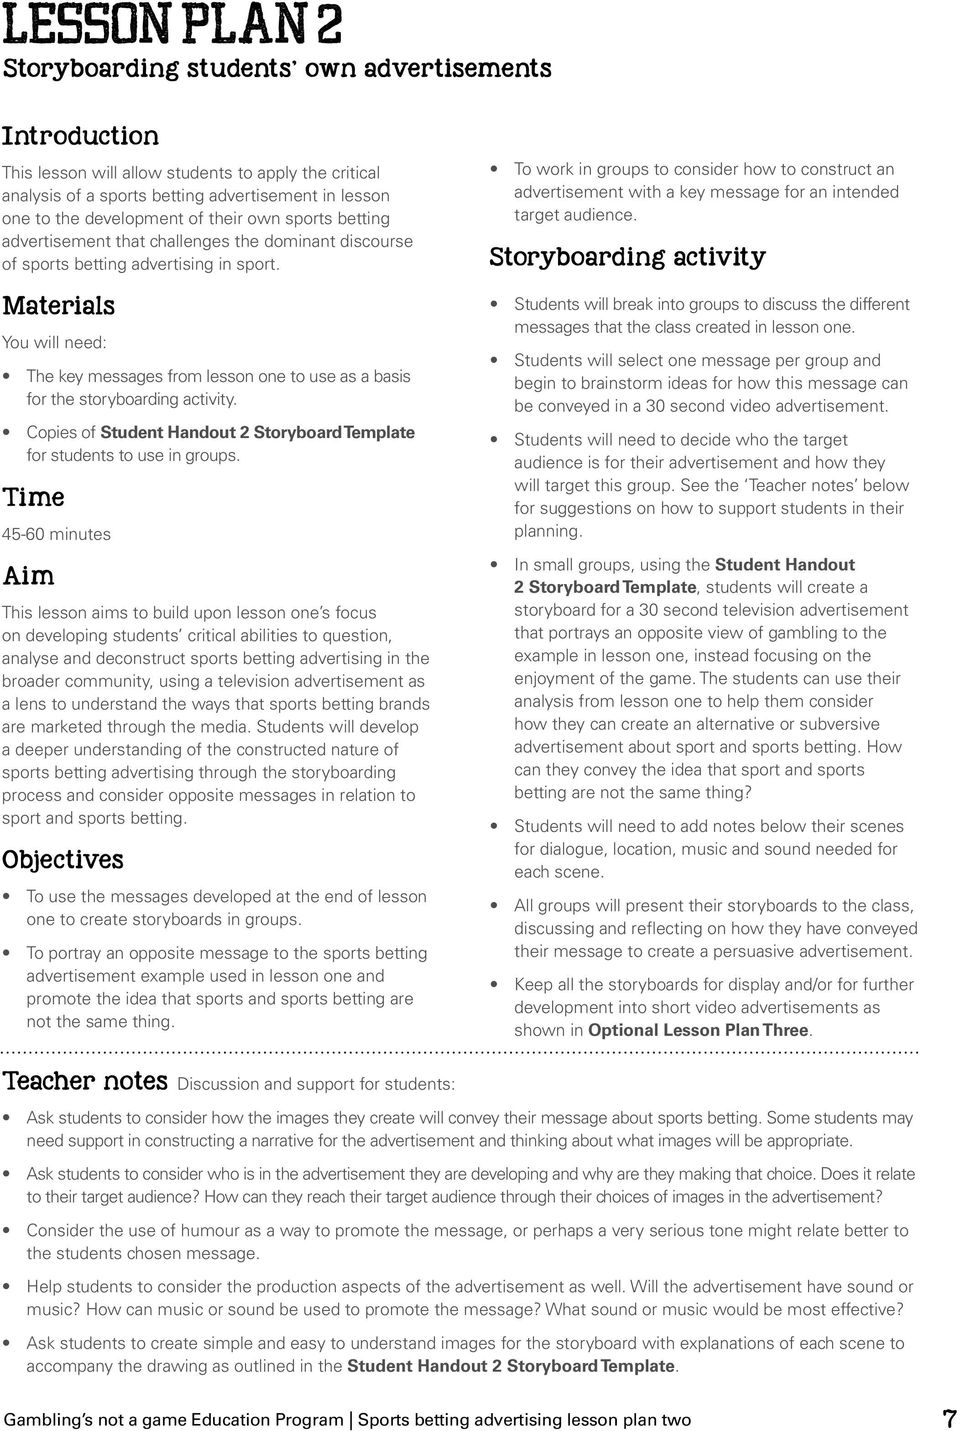 Copies of Student Handout 2 Storyboard Template for students to use in groups.